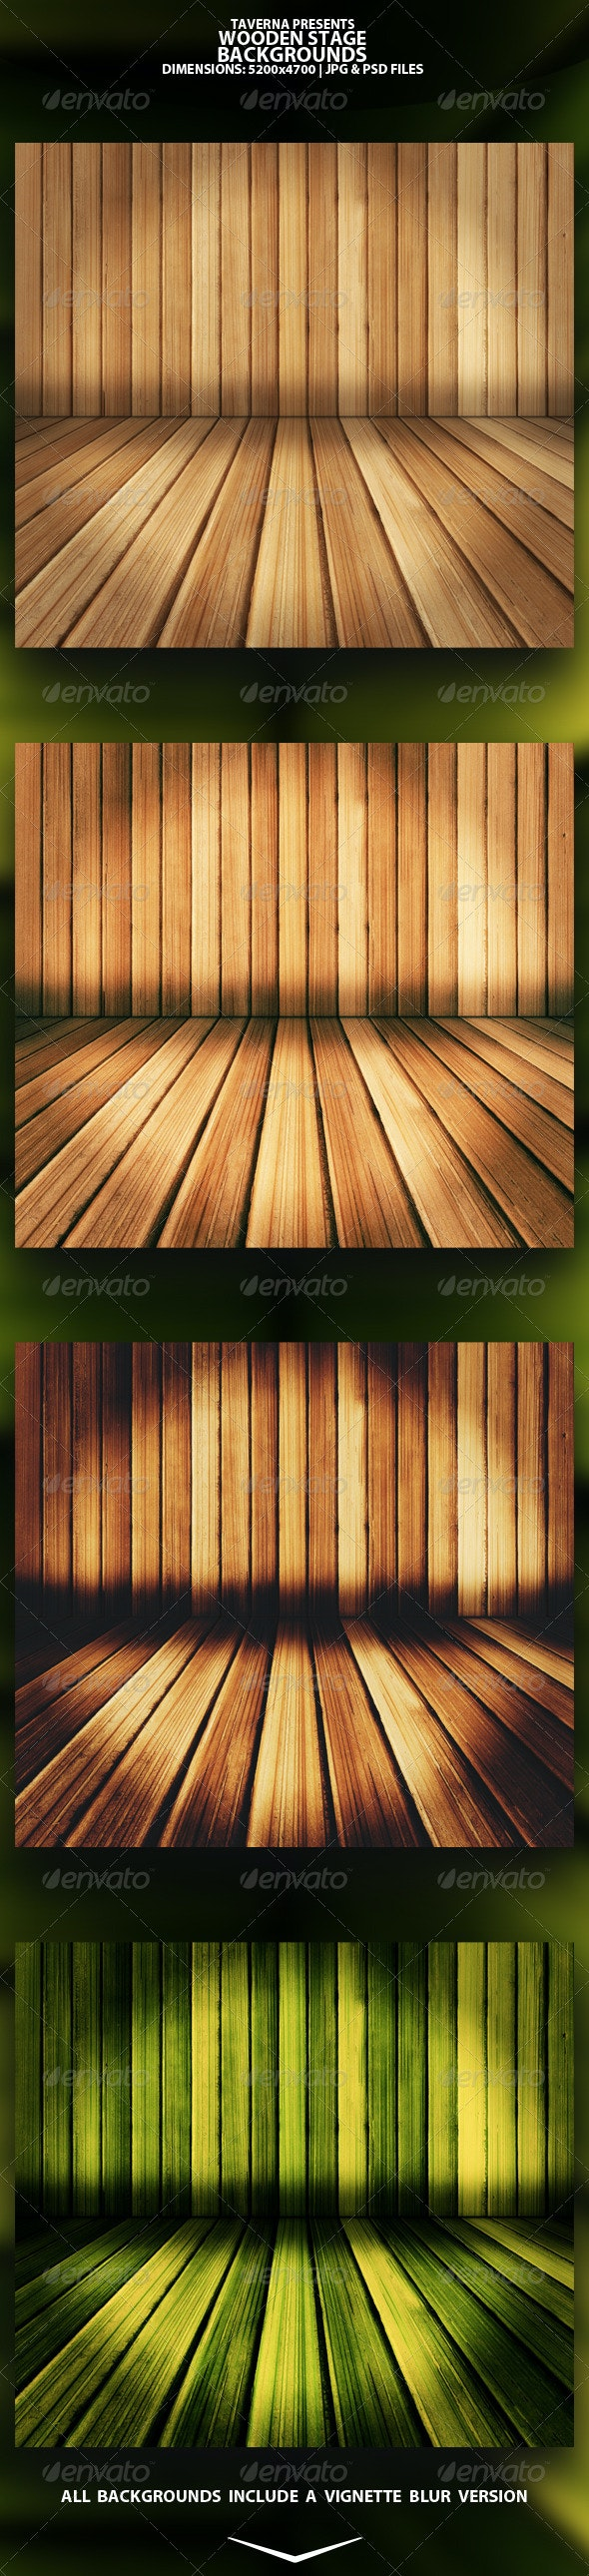 Wooden Stage - Backgrounds - Graphics